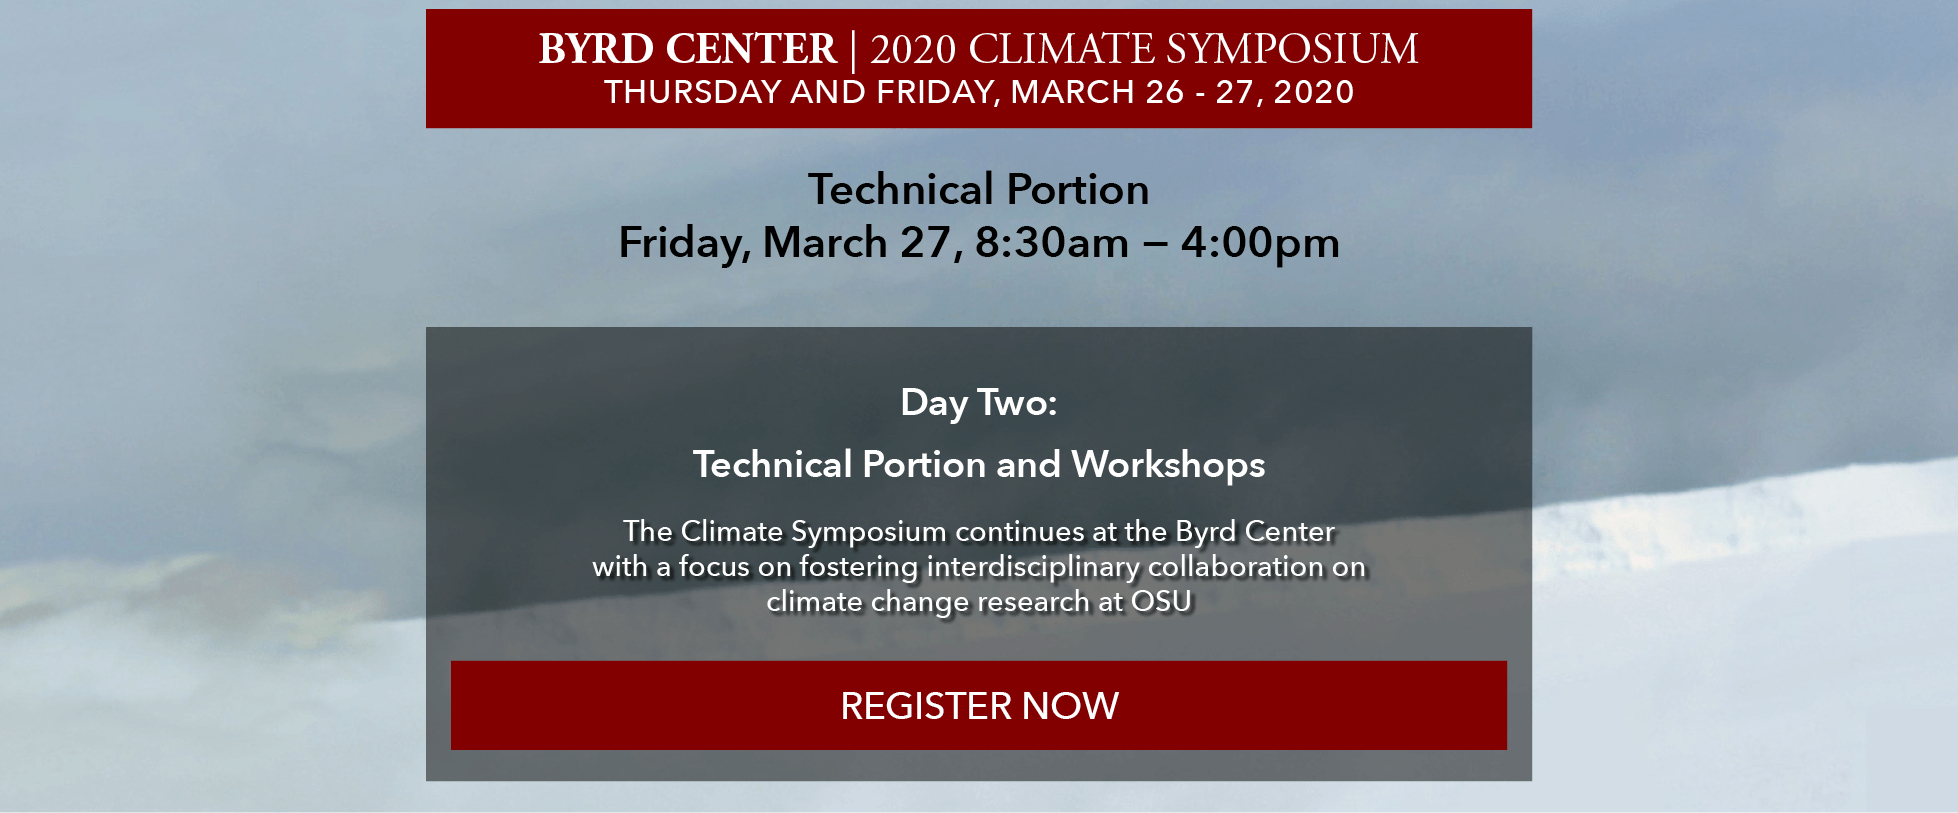 Register now for the 2020 Climate Symposium: day two